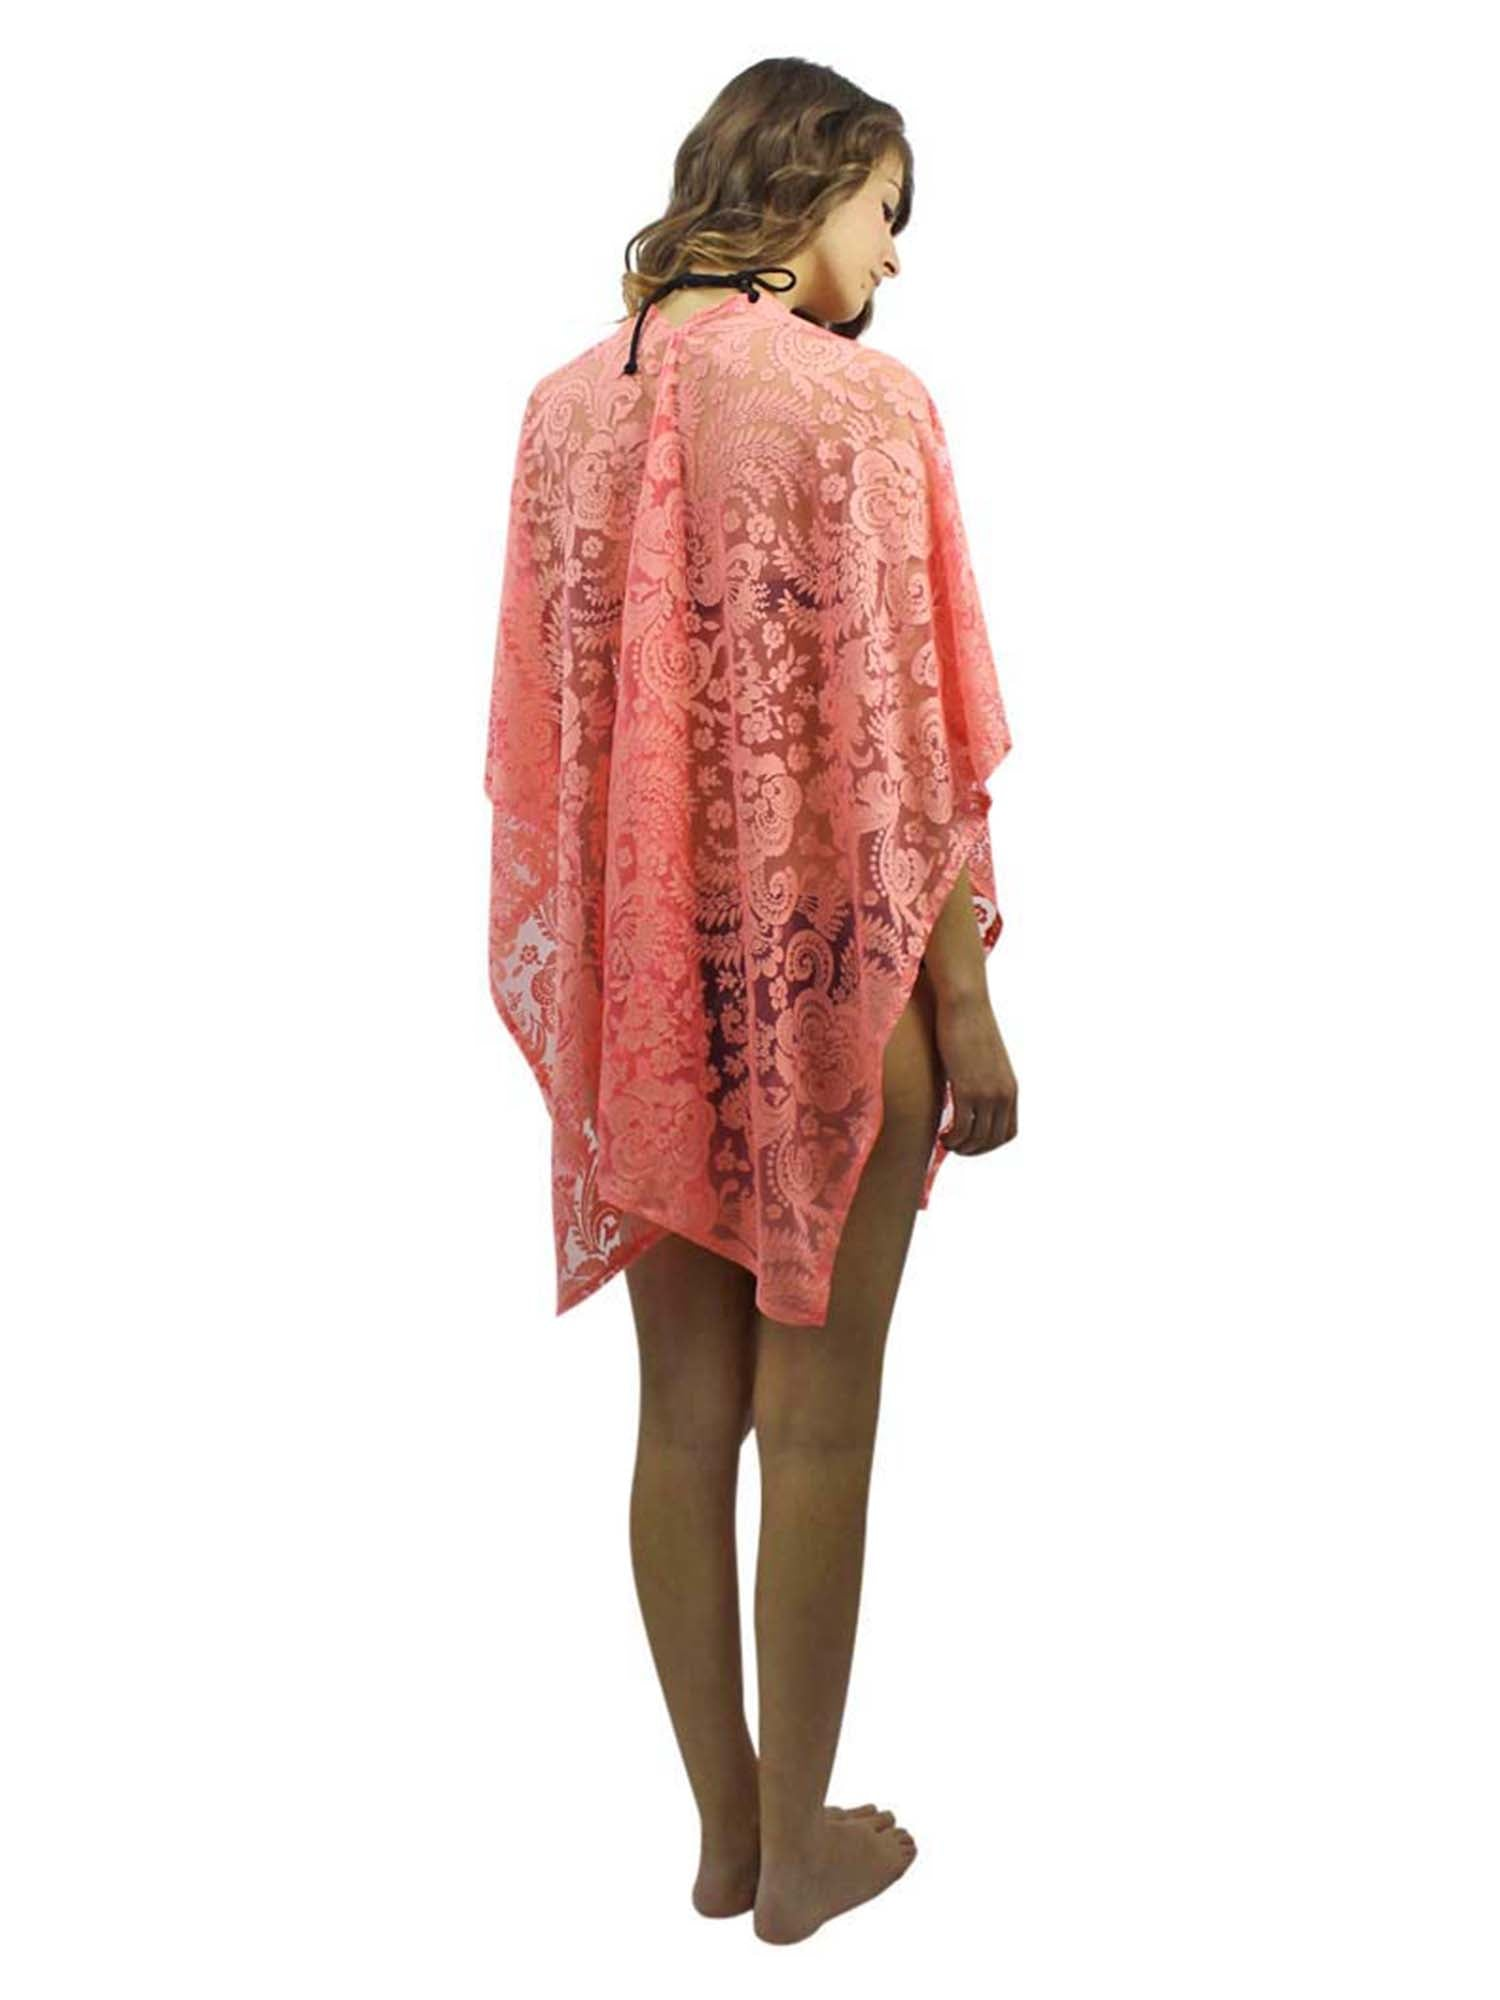 Sheer Lace Summer Shawl Cover Up Beach Wrap